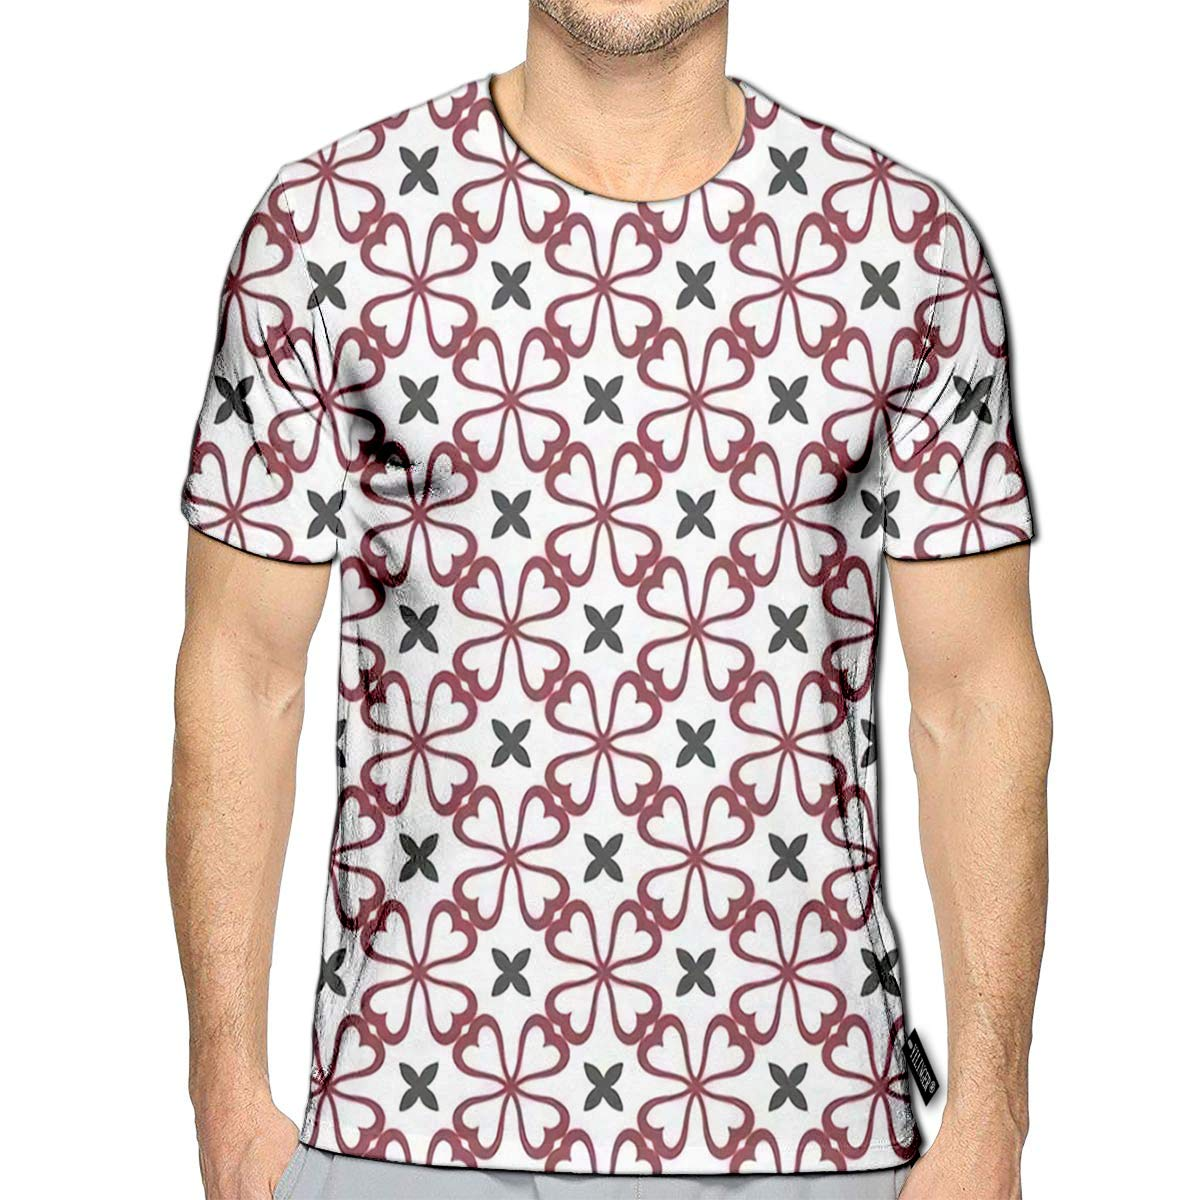 YILINGER 3D Printed T Shirts Abstract Geometric Lines Oriental Ornaments Patterns Casual Mens Hipster Top Tees